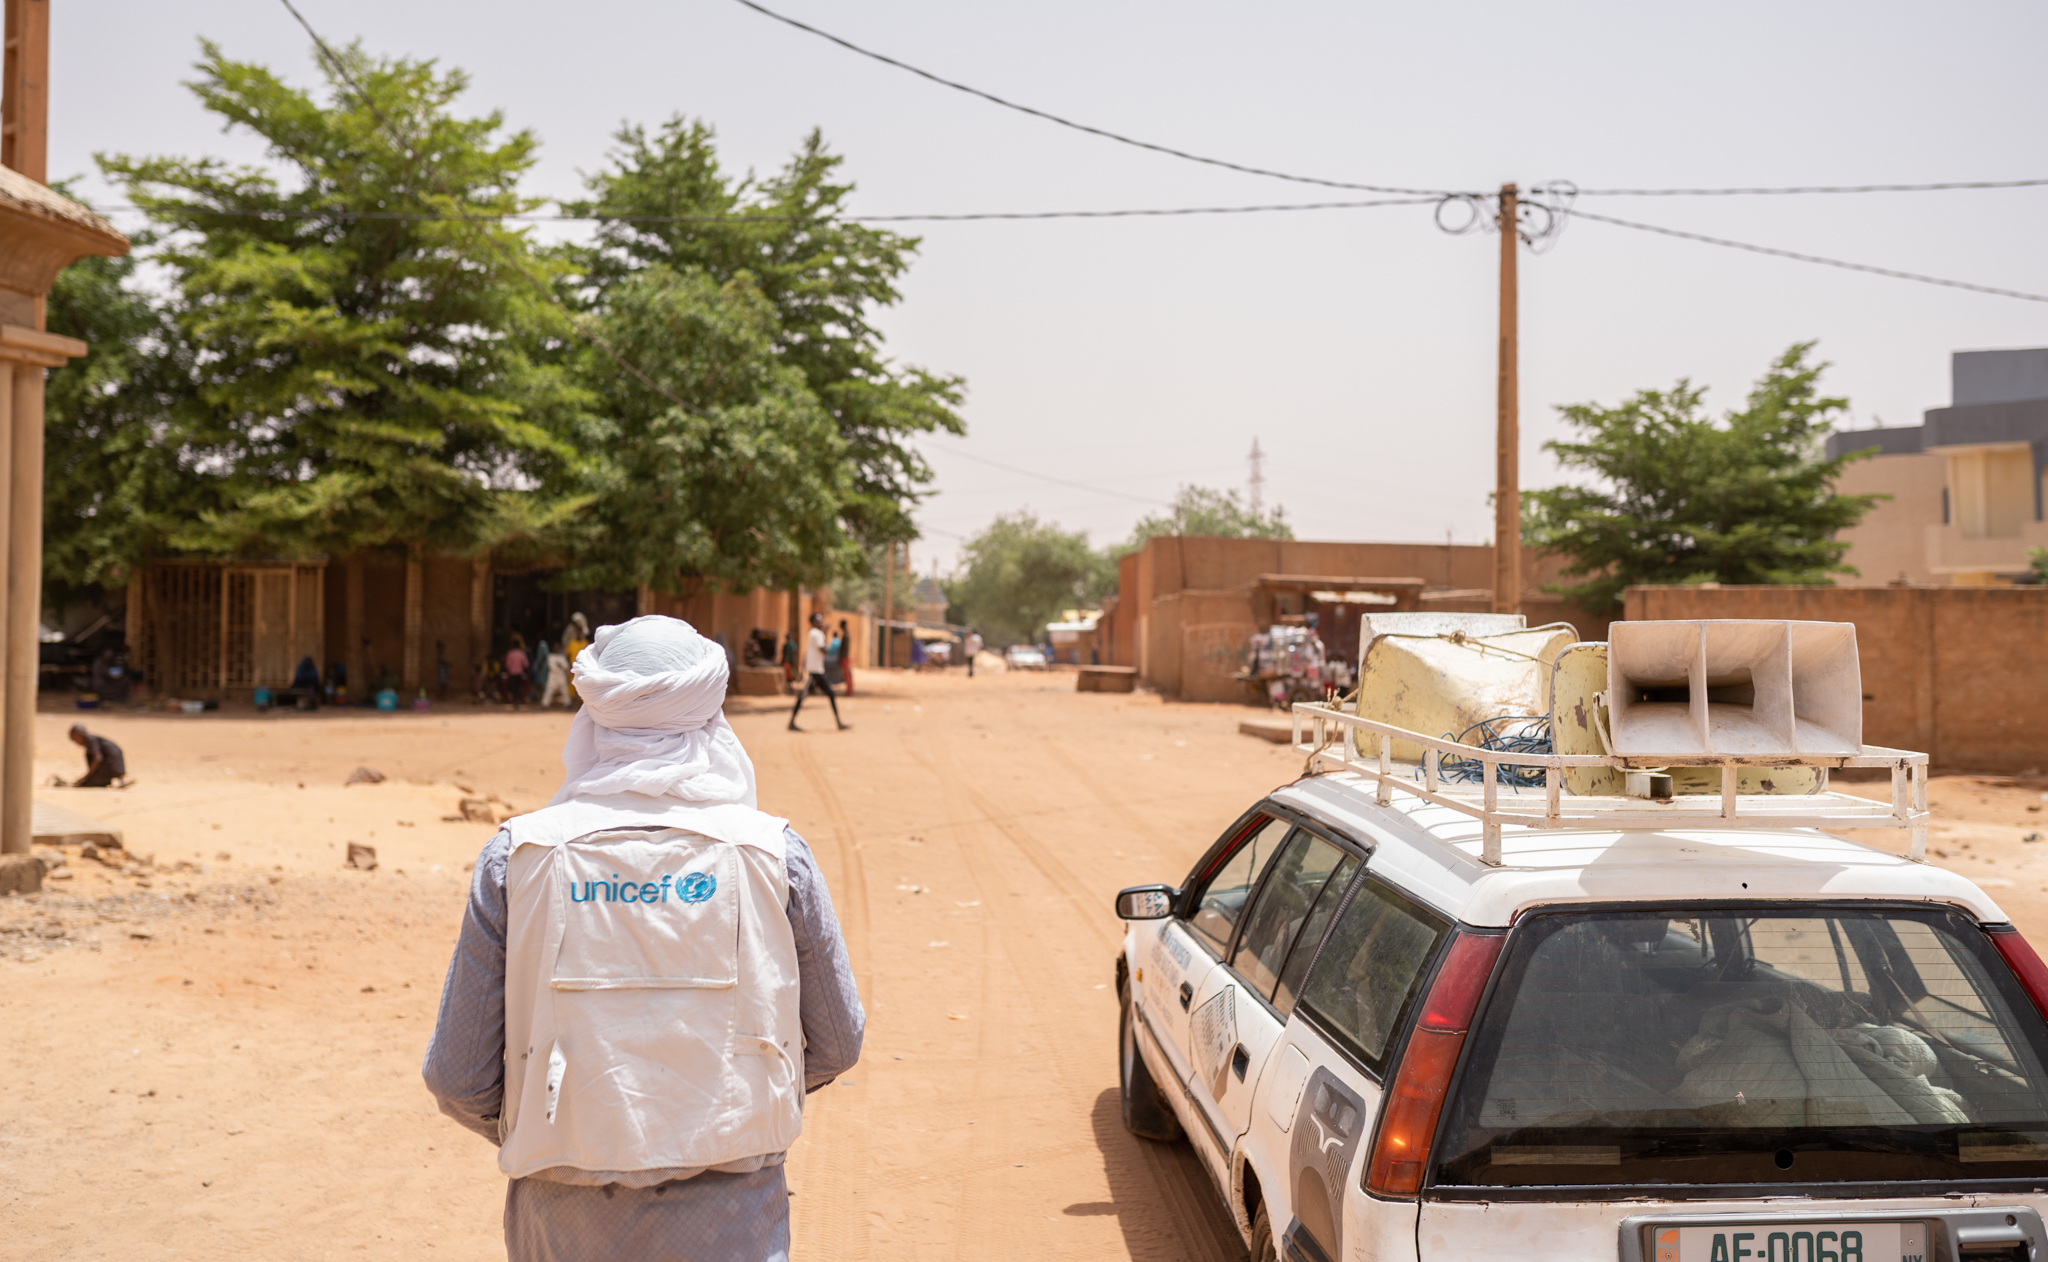 A UNICEF-clad worker on a dusty road.